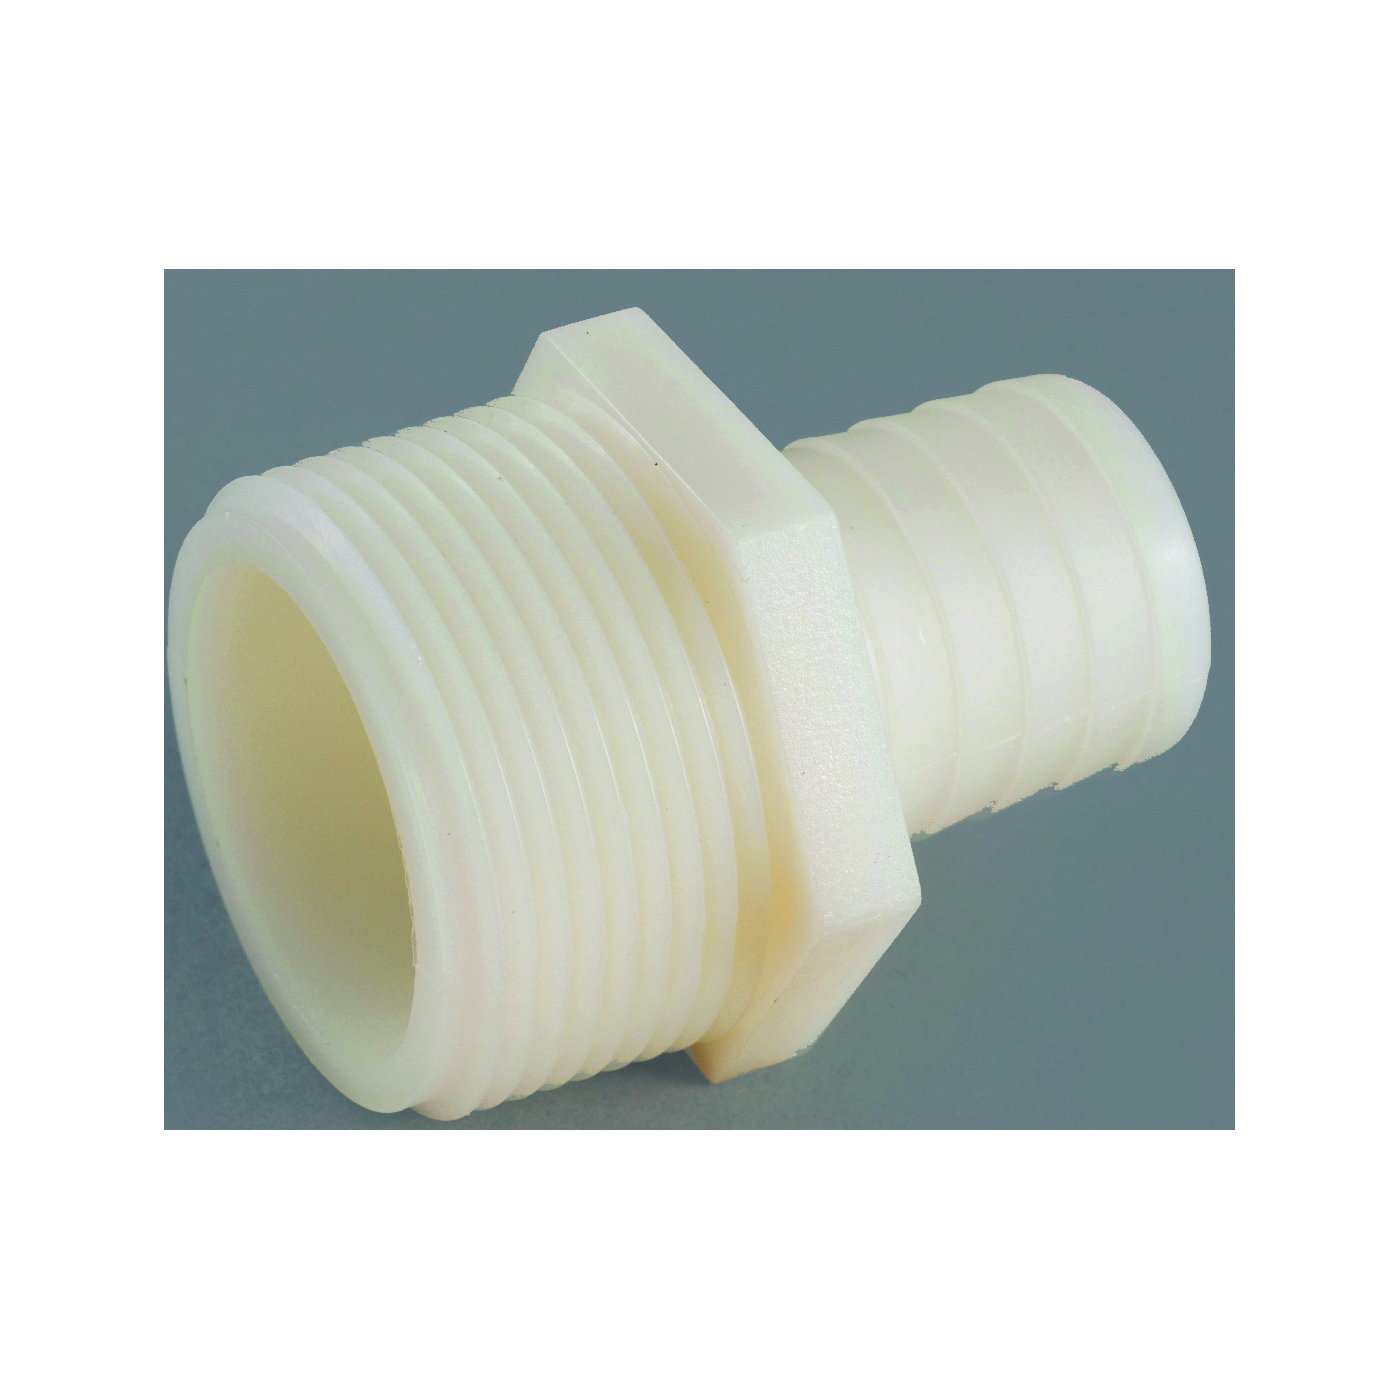 Picture of Anderson Metals 53701-1006 Hose Adapter, 3/8 in, Barb, 5/8 in, MIP, 150 psi Pressure, Nylon